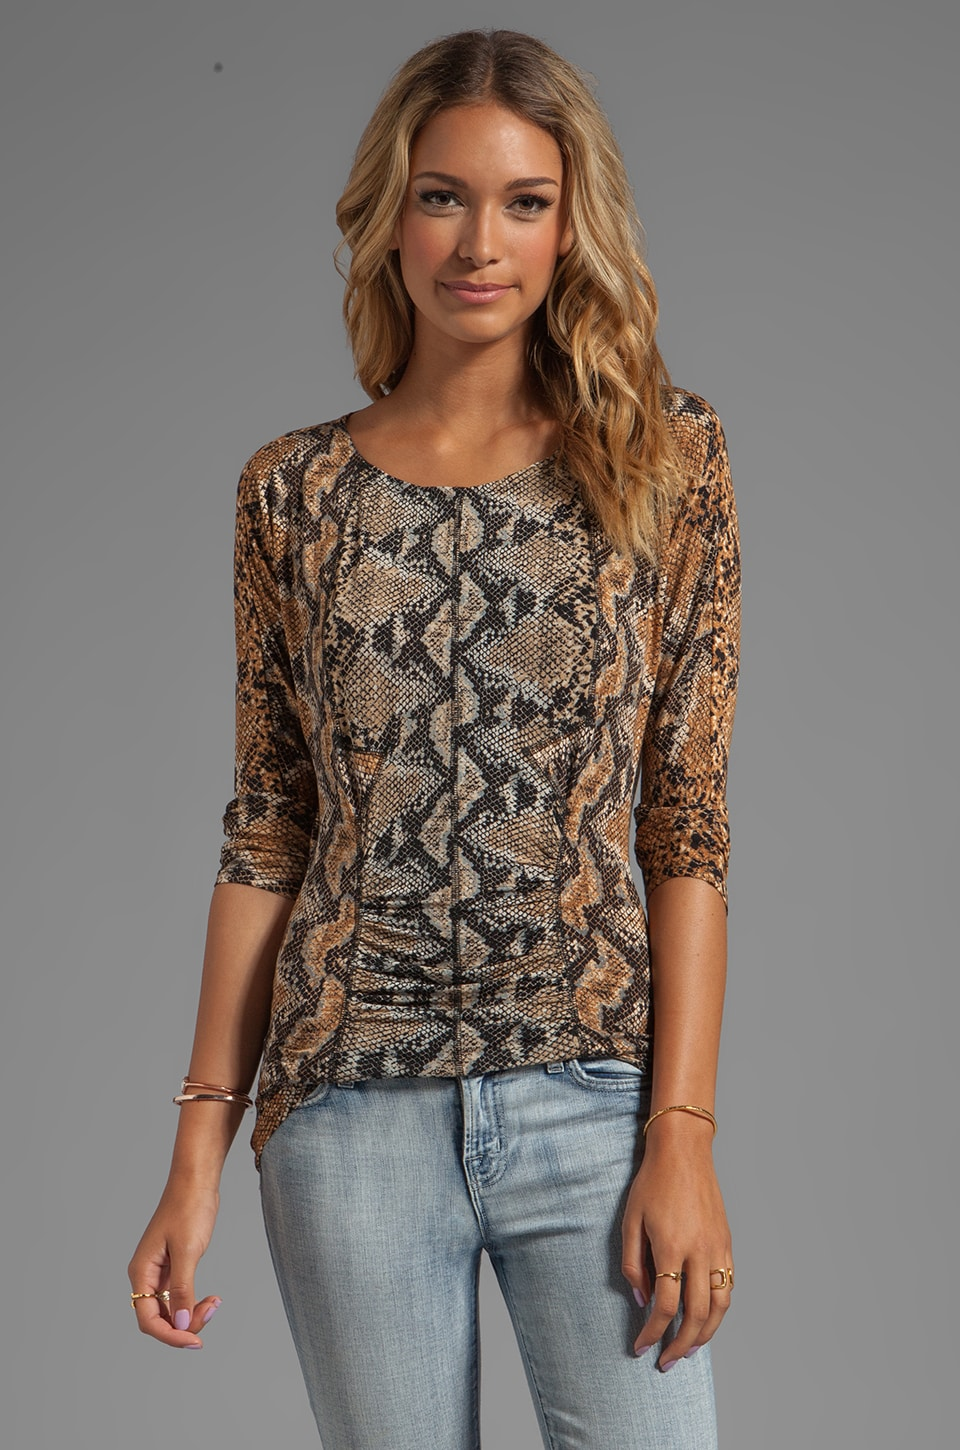 Tracy Reese Printed Jersey Matte/Slink Dolman T in Neutral Python